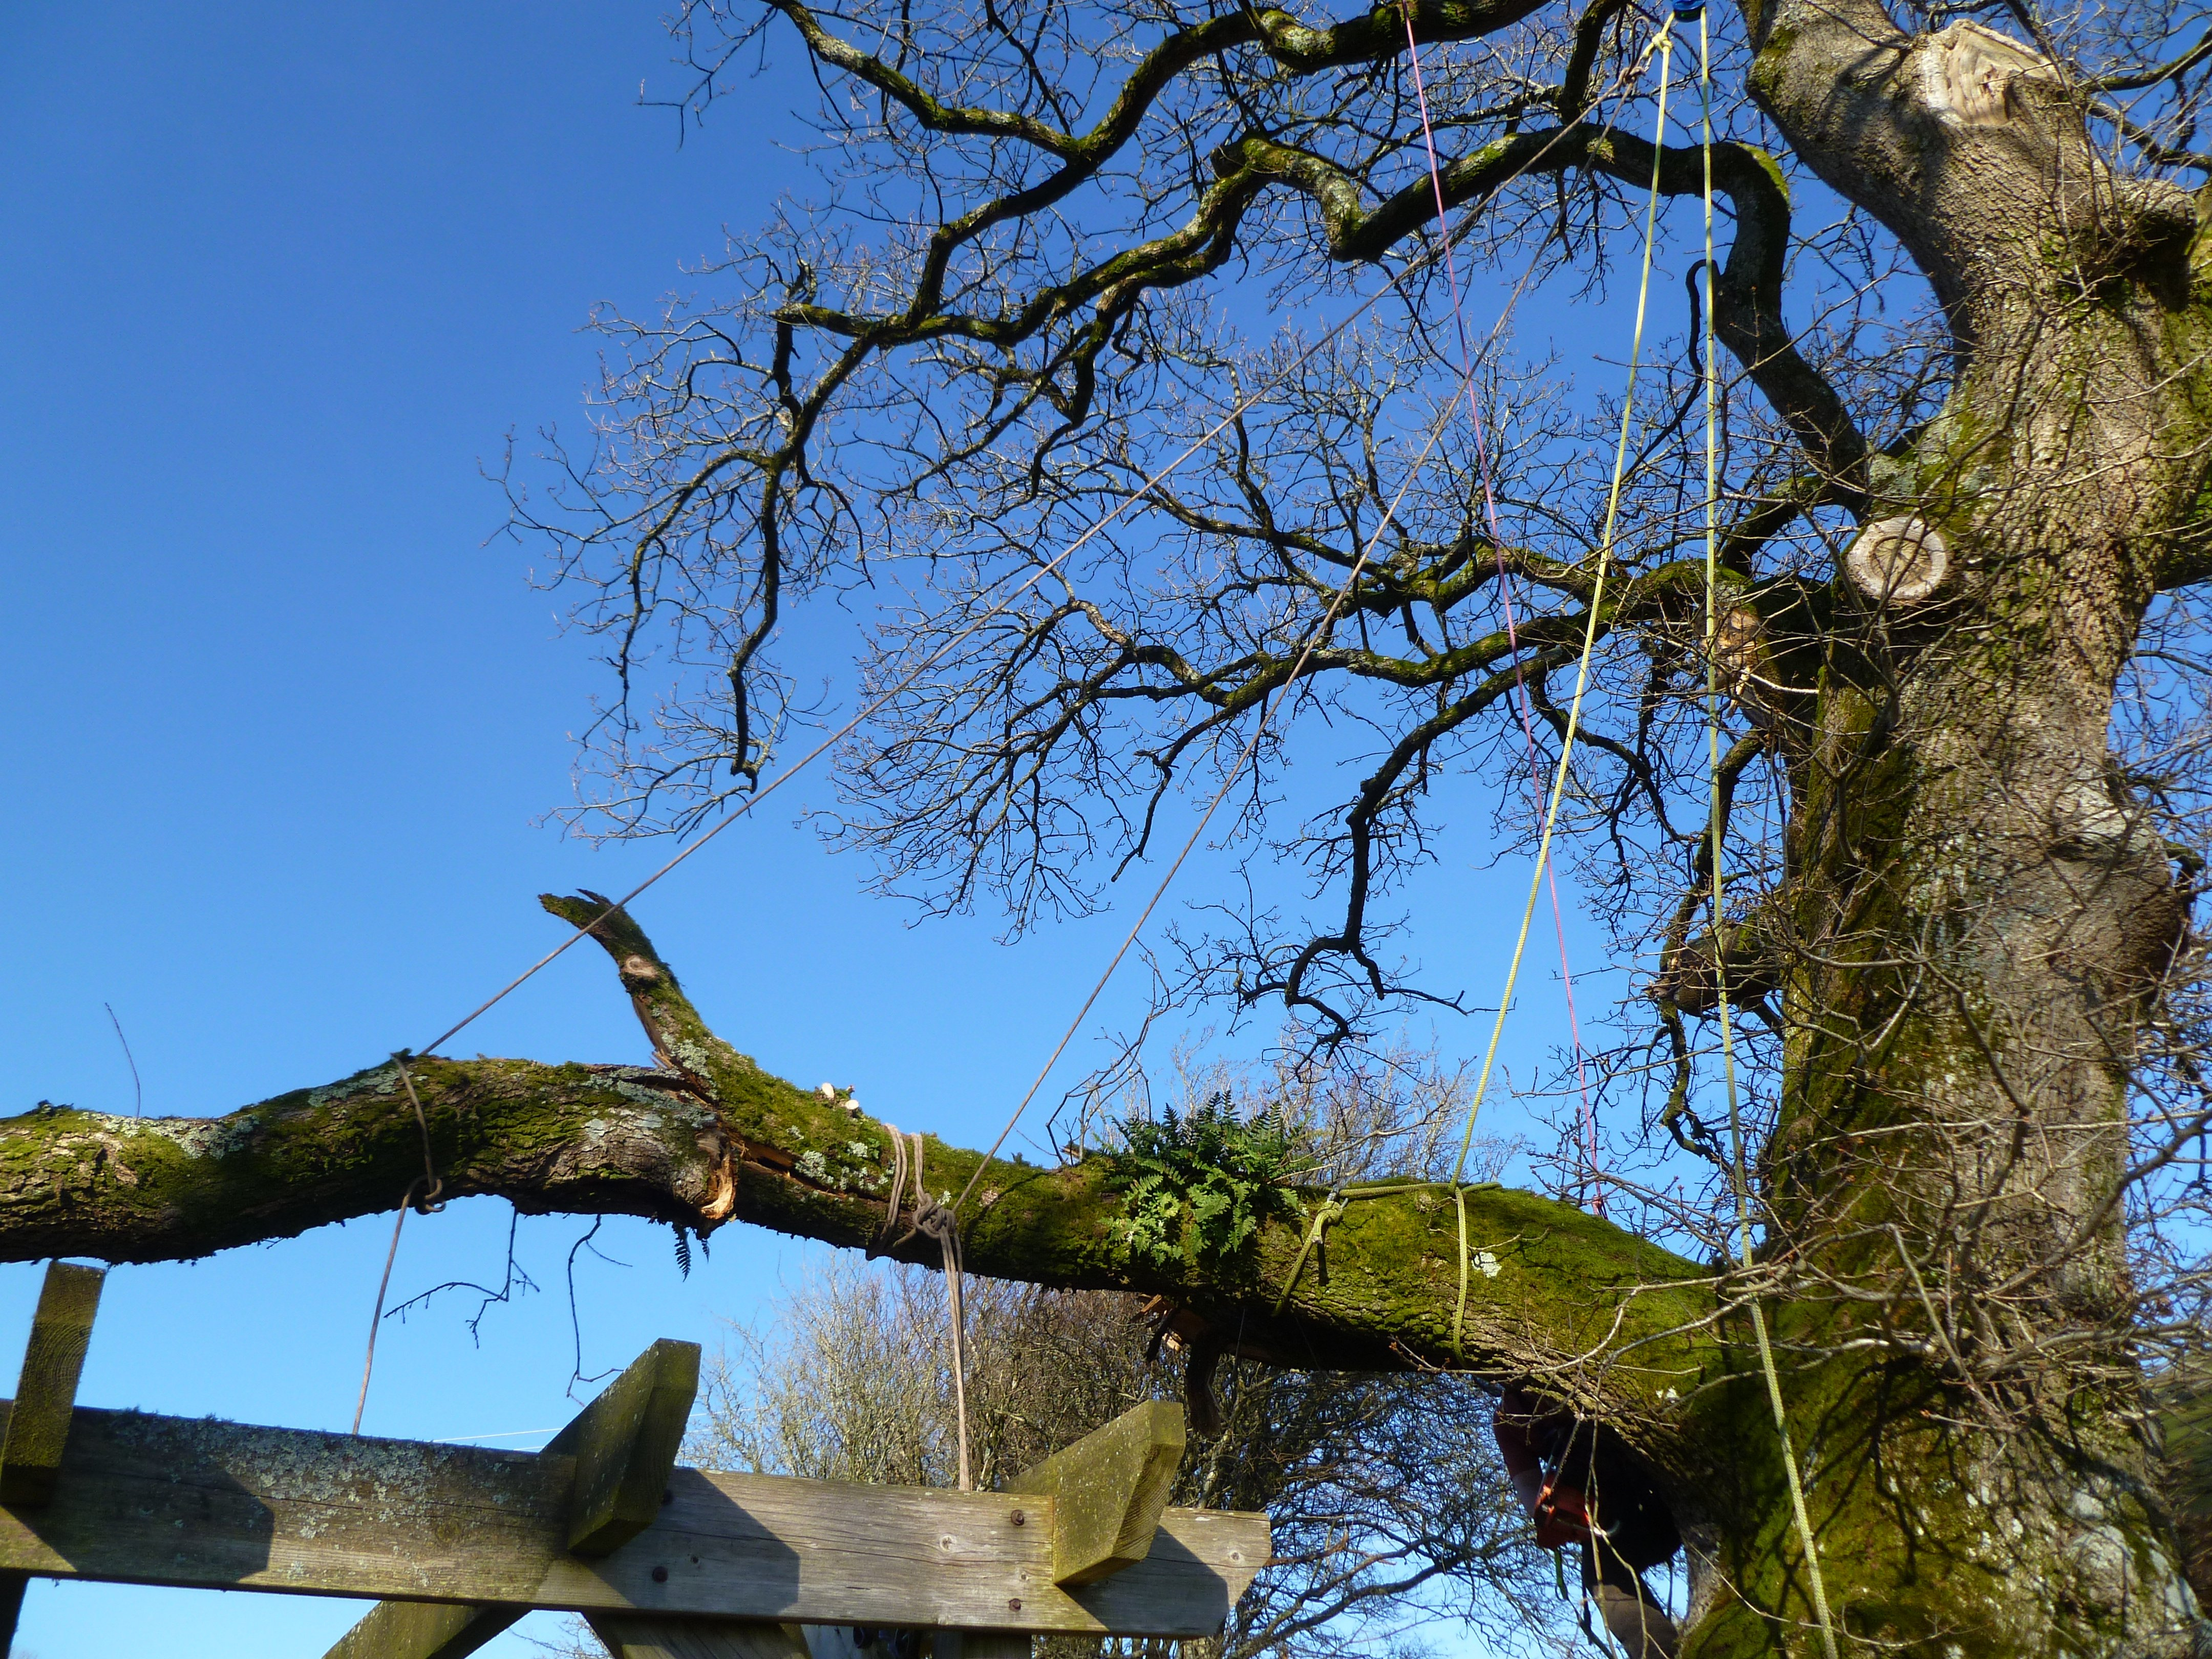 Several rigging and lowering ropes were used to secure the Oak tree branches in order to safely dismantle them.